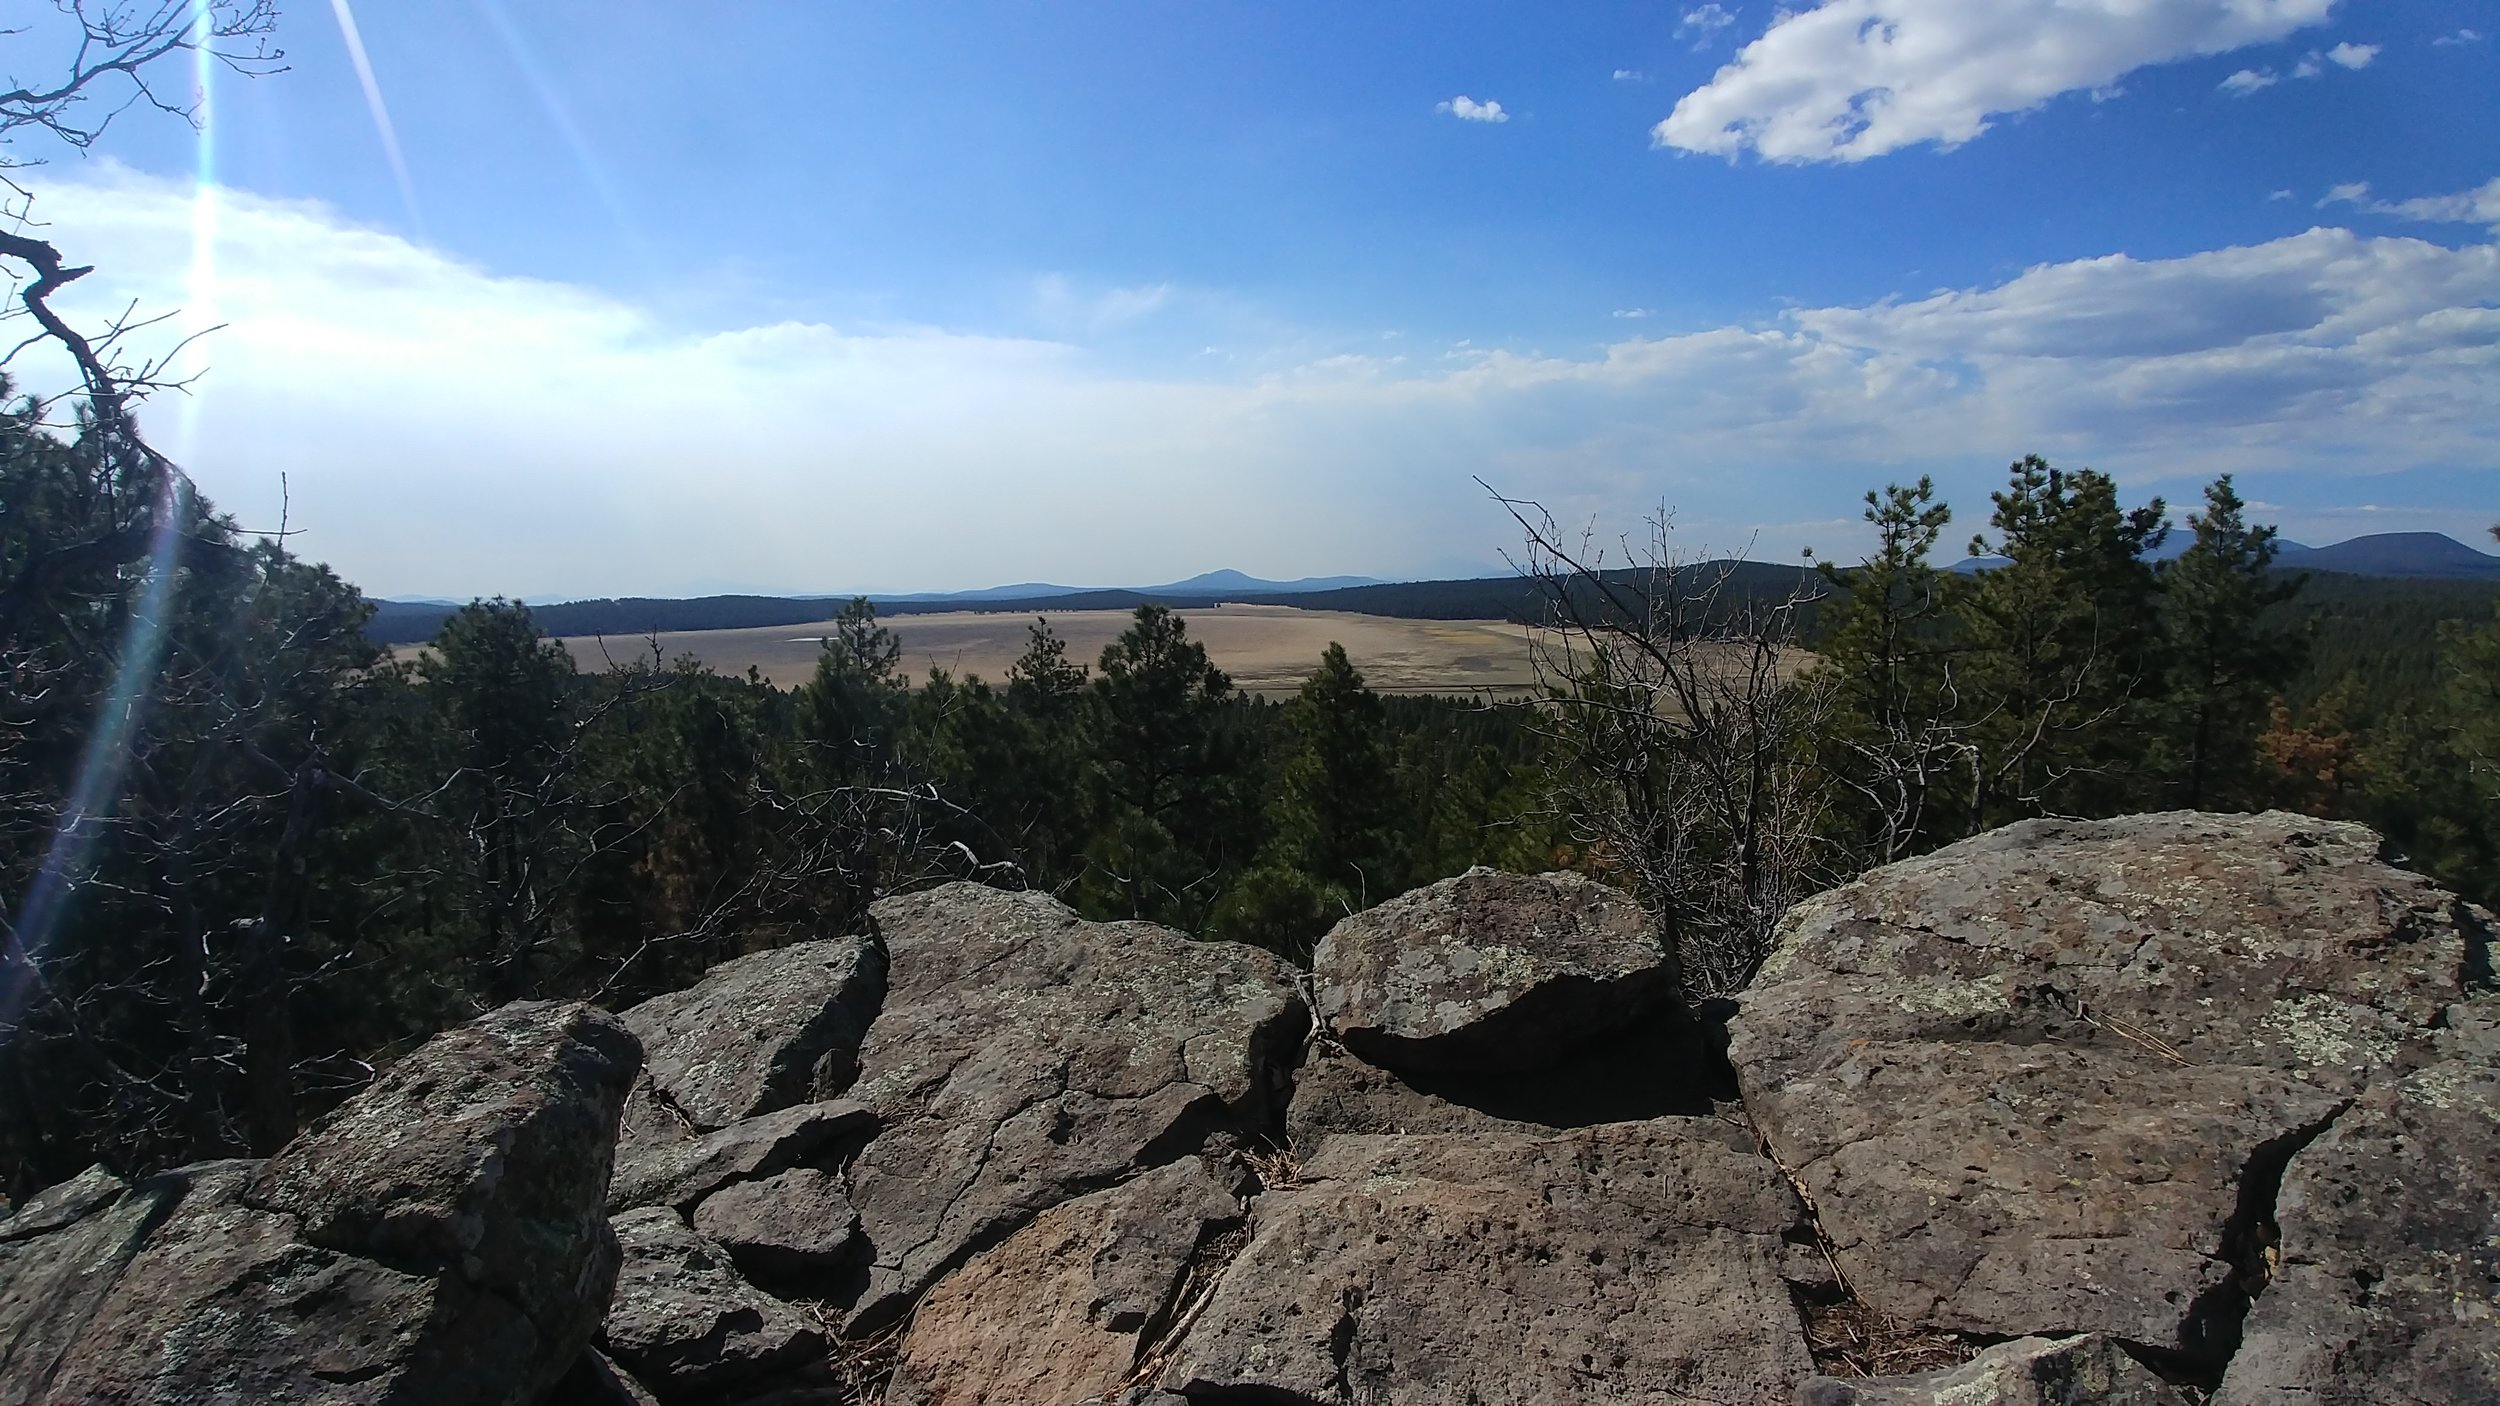 Take in the view from the Gold Digger Trail, at Rogers Lake County Natural Area.